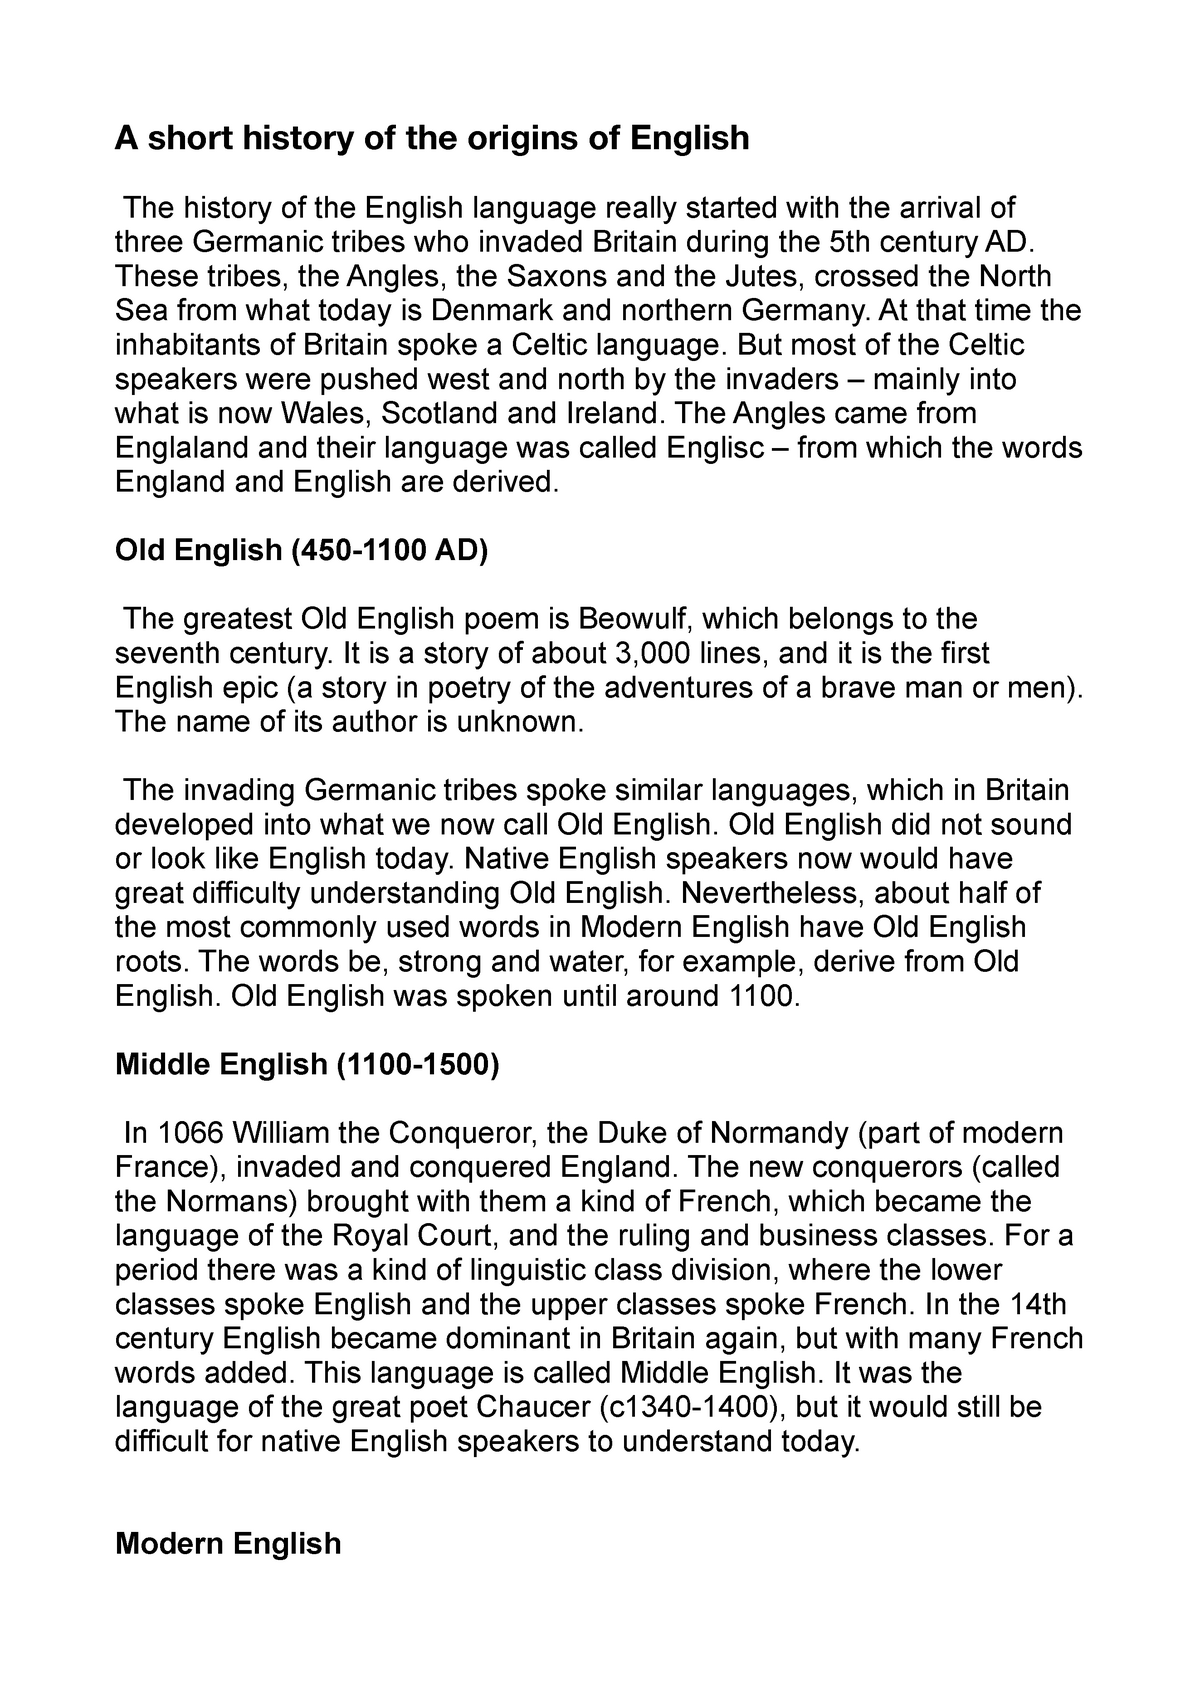 Origins Of English Pdf Nota 75 13069196 Studocu